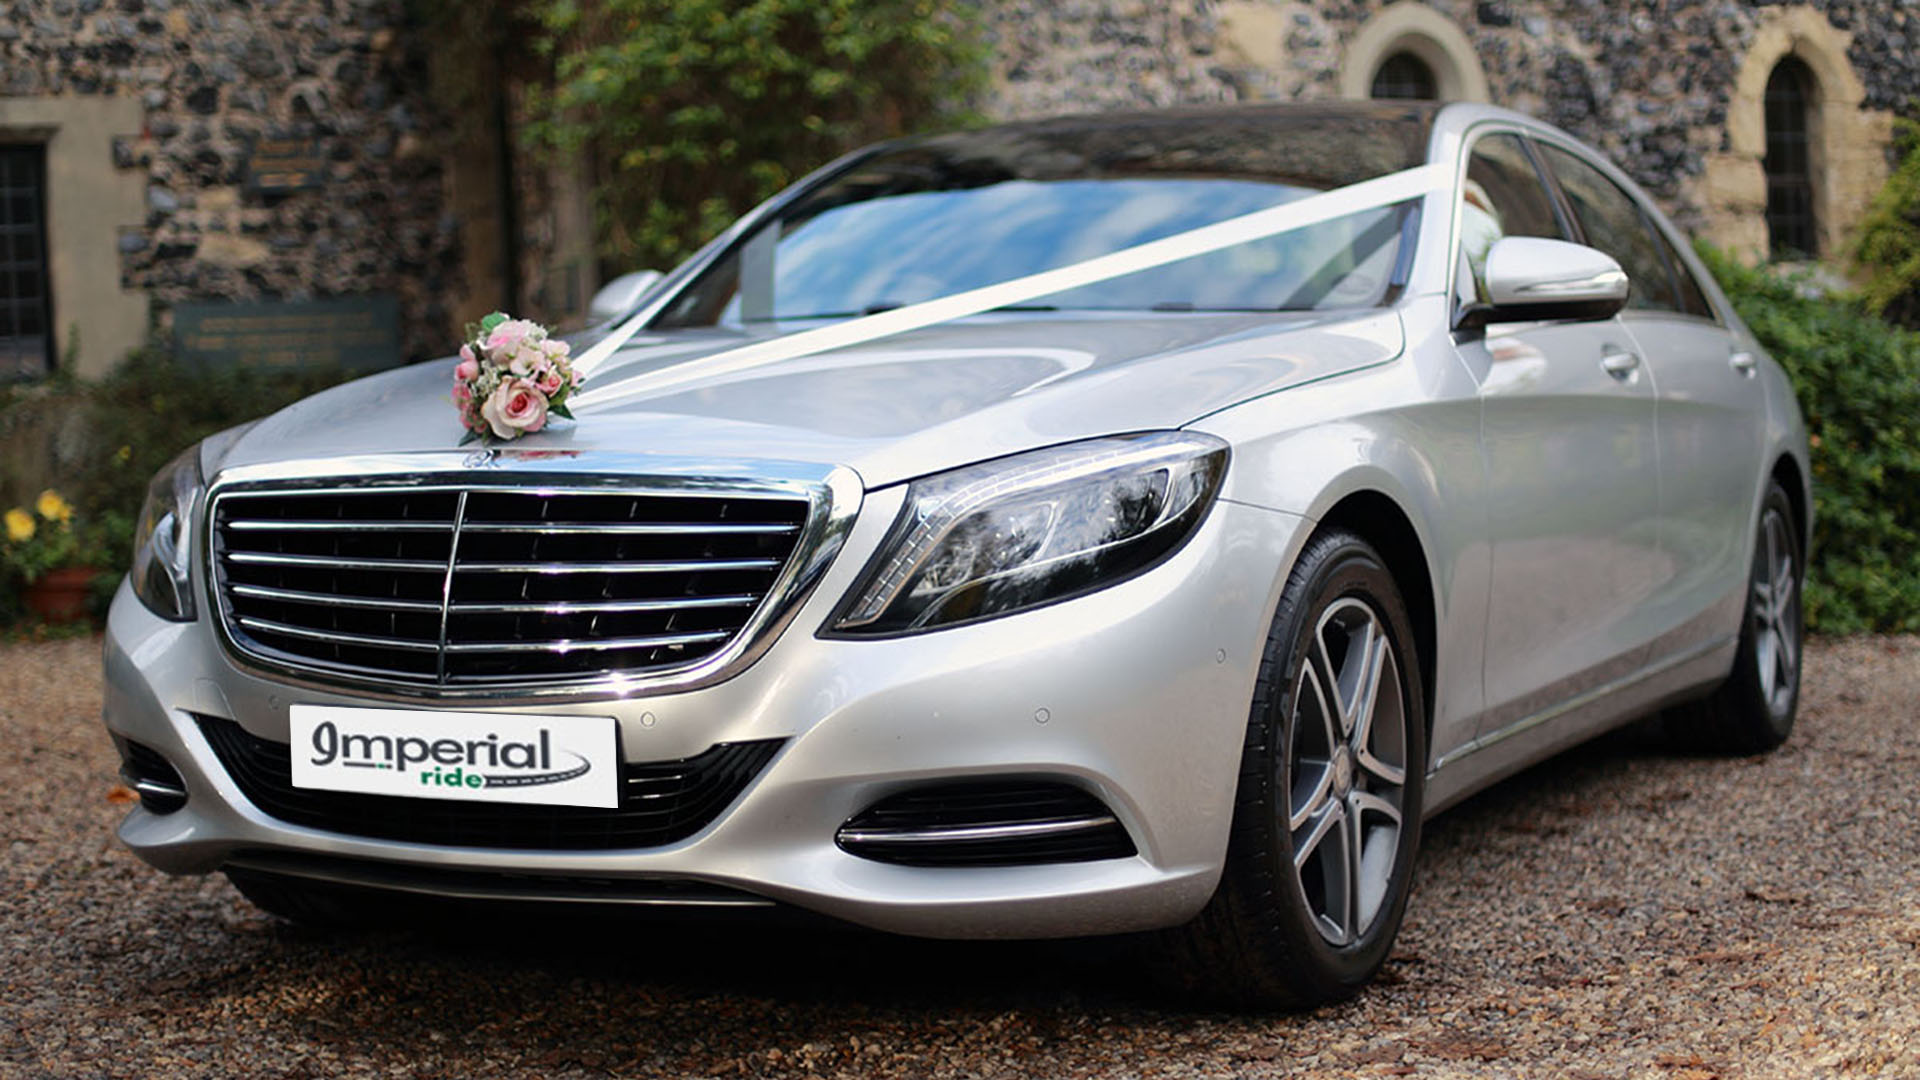 s-class-wedding-hire-in-hexley